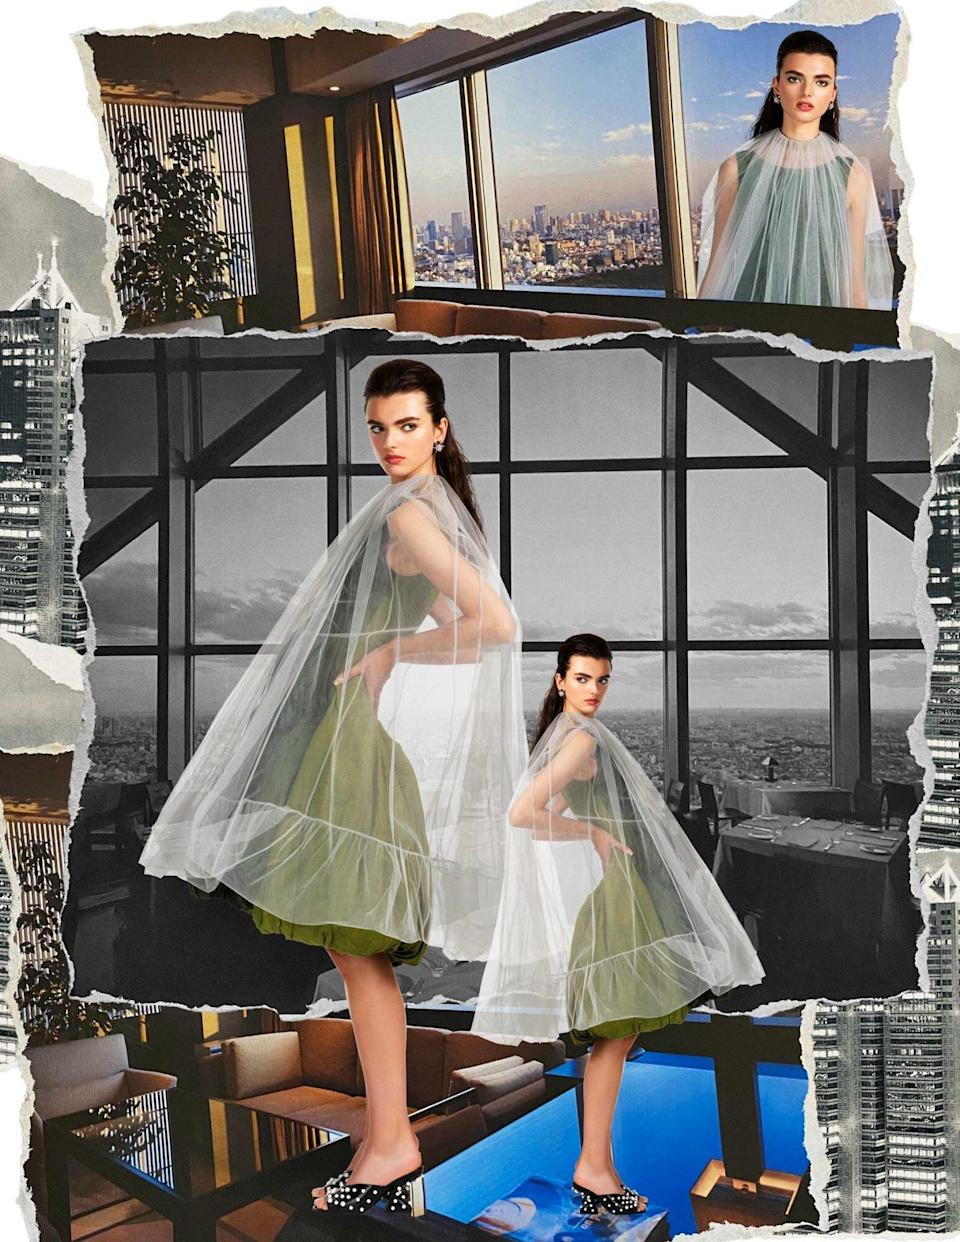 A model wears a sage green dress with a sheer white overlay, superimposed over photos of the Park Hyatt Tokyo hotel